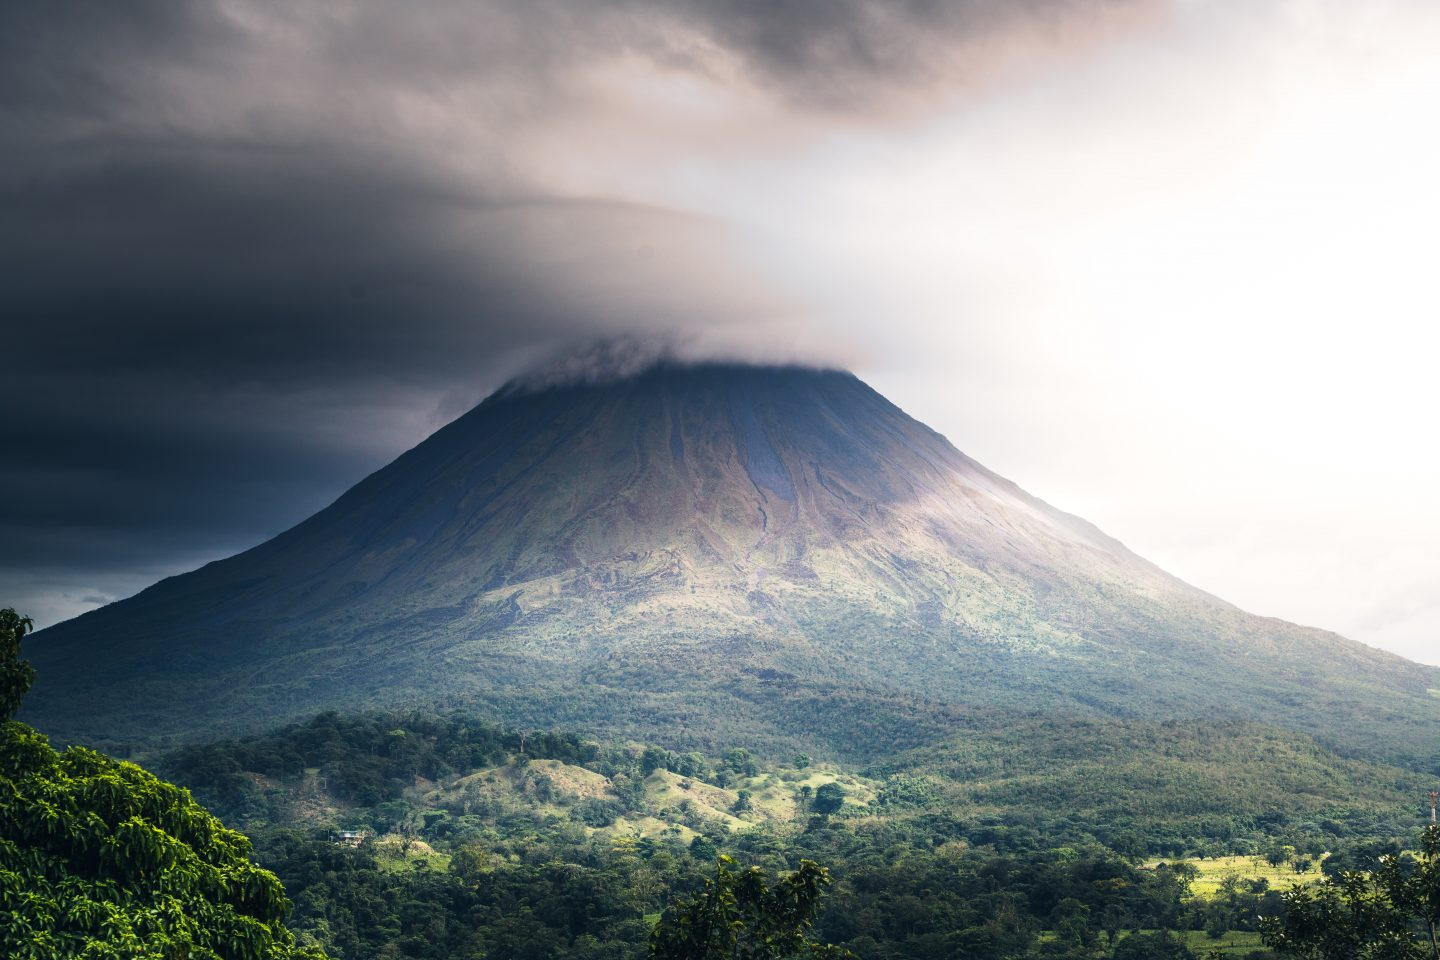 costa rica travel, a mountain and volcano in costa rica during fog, nature view